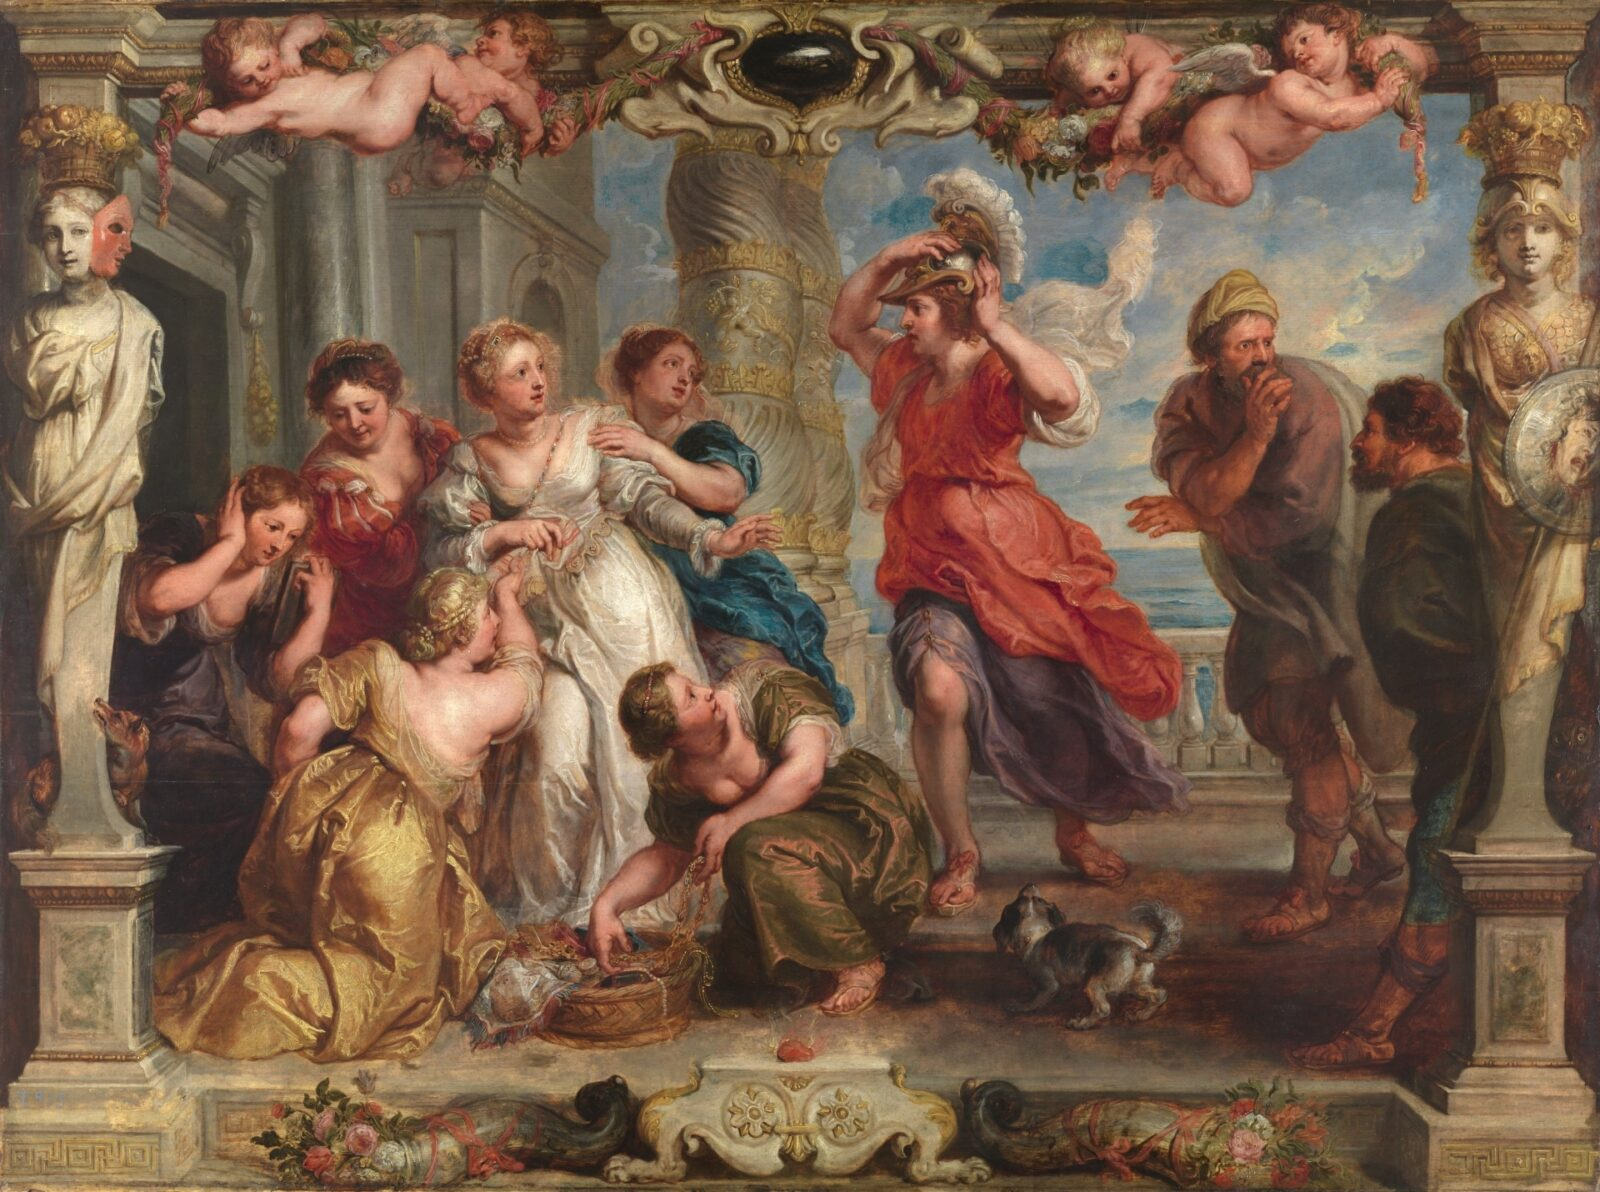 Exhibition at the Prado Museum Brings Together 82 Sketches by Peter Paul Rubens